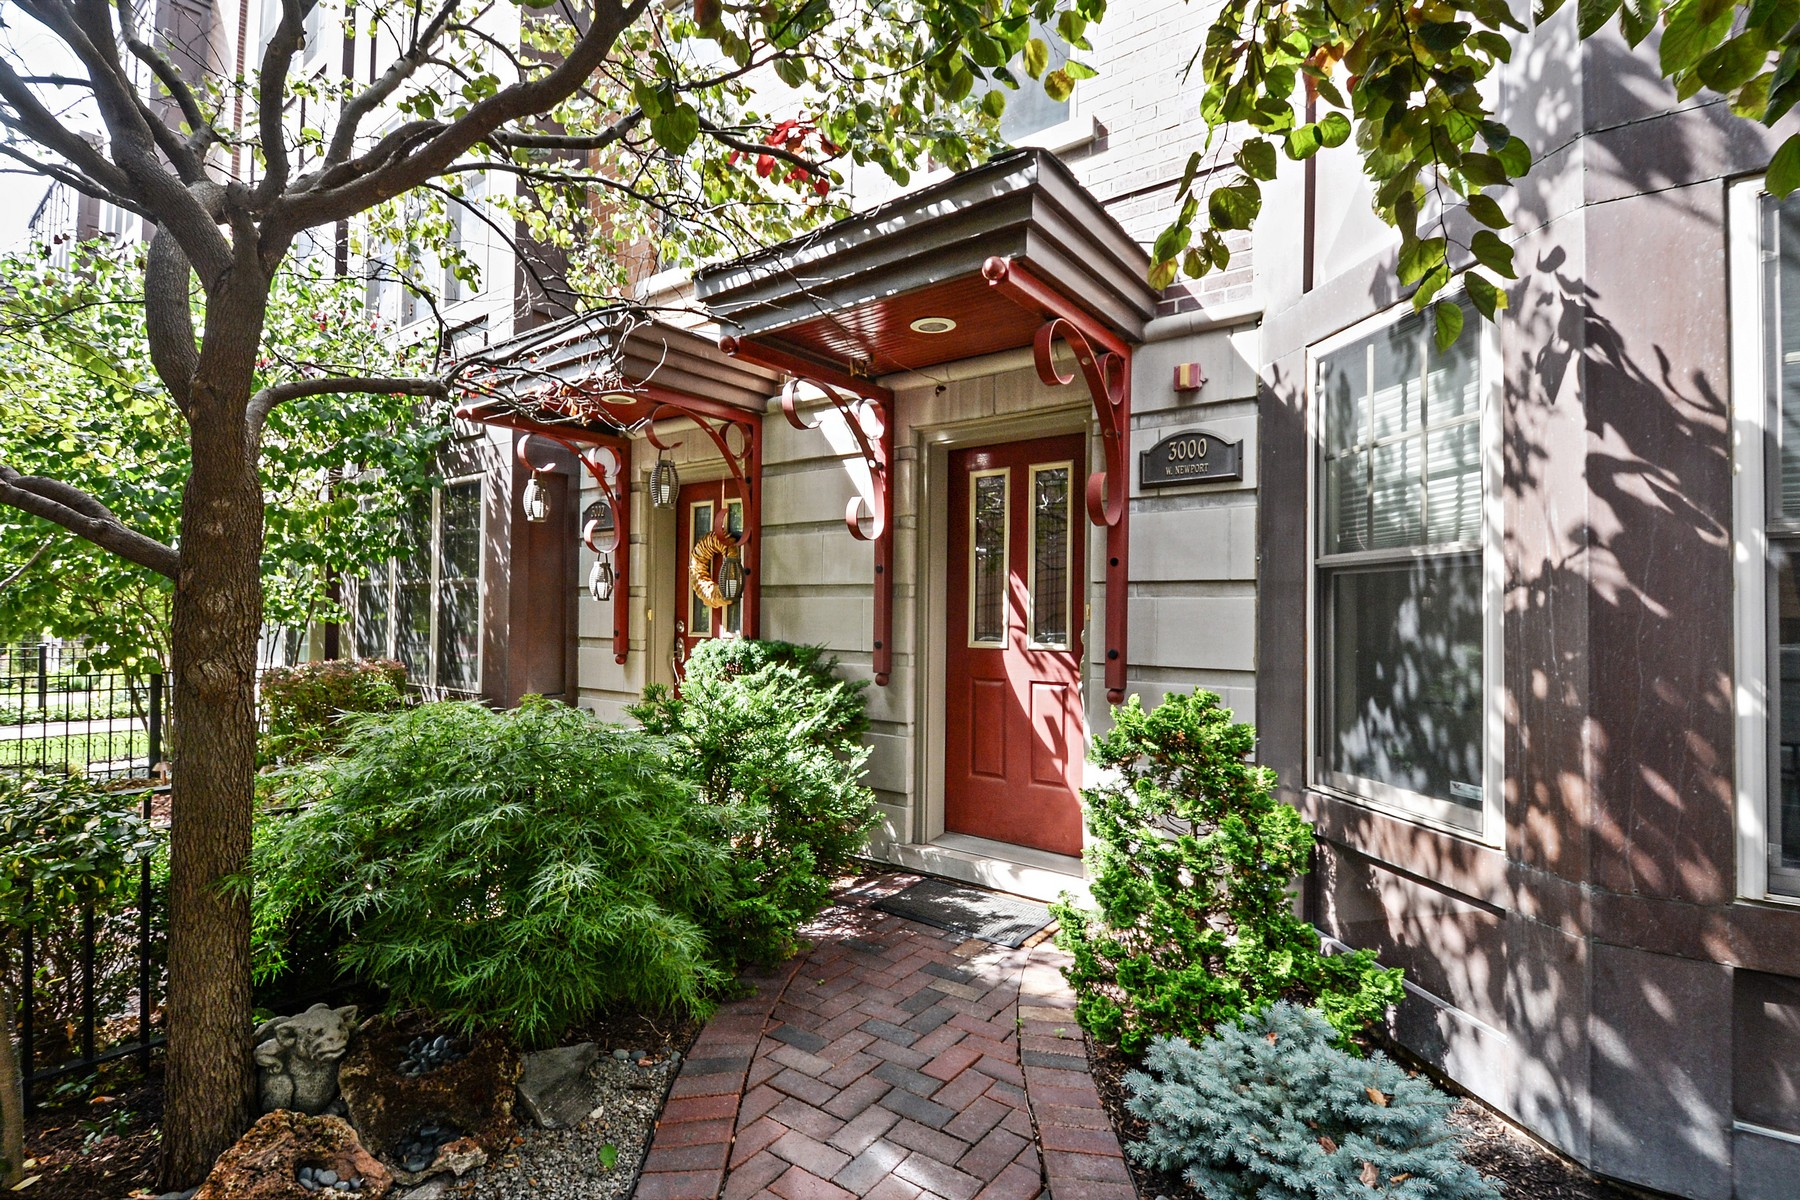 Townhouse for Sale at One of a Kind Corner Townhouse 3000 W Newport Avenue Unit 1 Chicago, Illinois 60618 United States